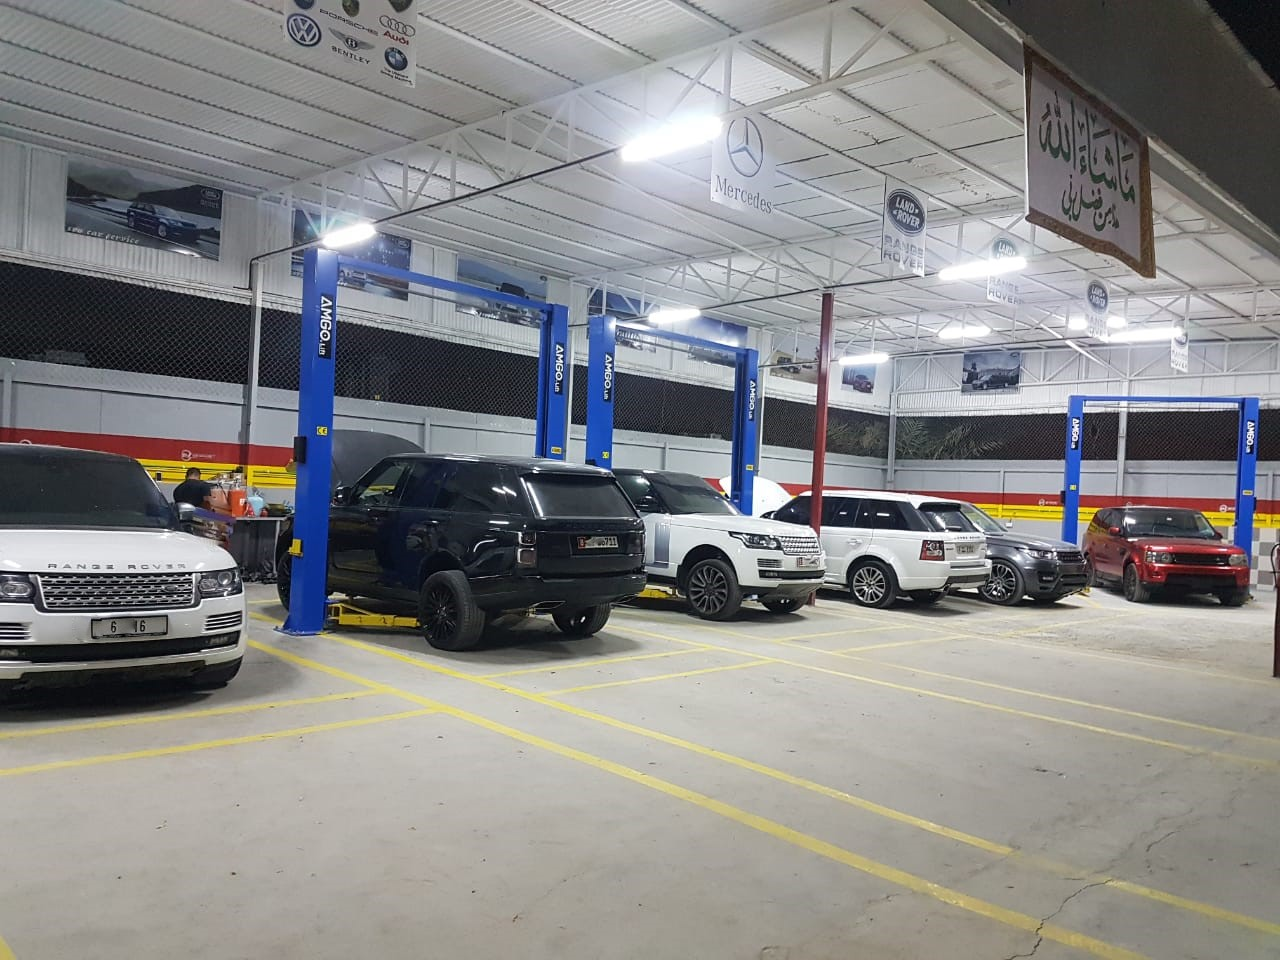 Land rover and Range rover repair workshop.jpeg